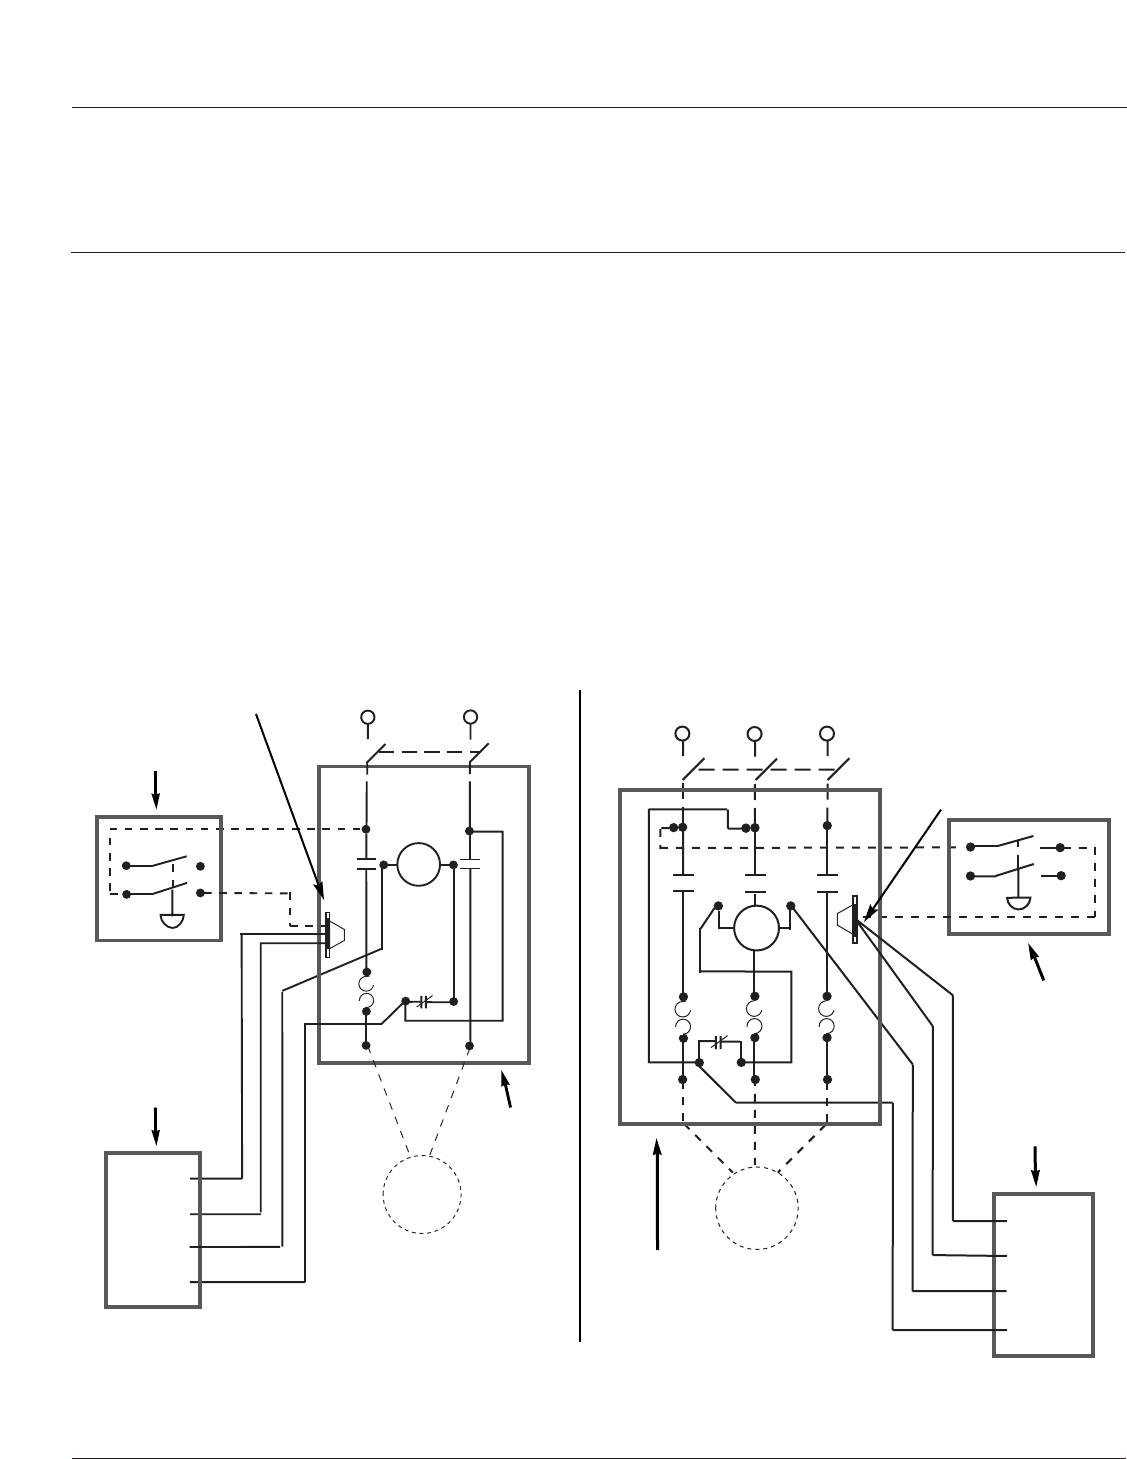 11b9278f 9704 4376 ab71 4fe84ff46a00 bg2 page 2 of campbell hausfeld air compressor tf0628 user guide husky air compressor wiring diagram at edmiracle.co